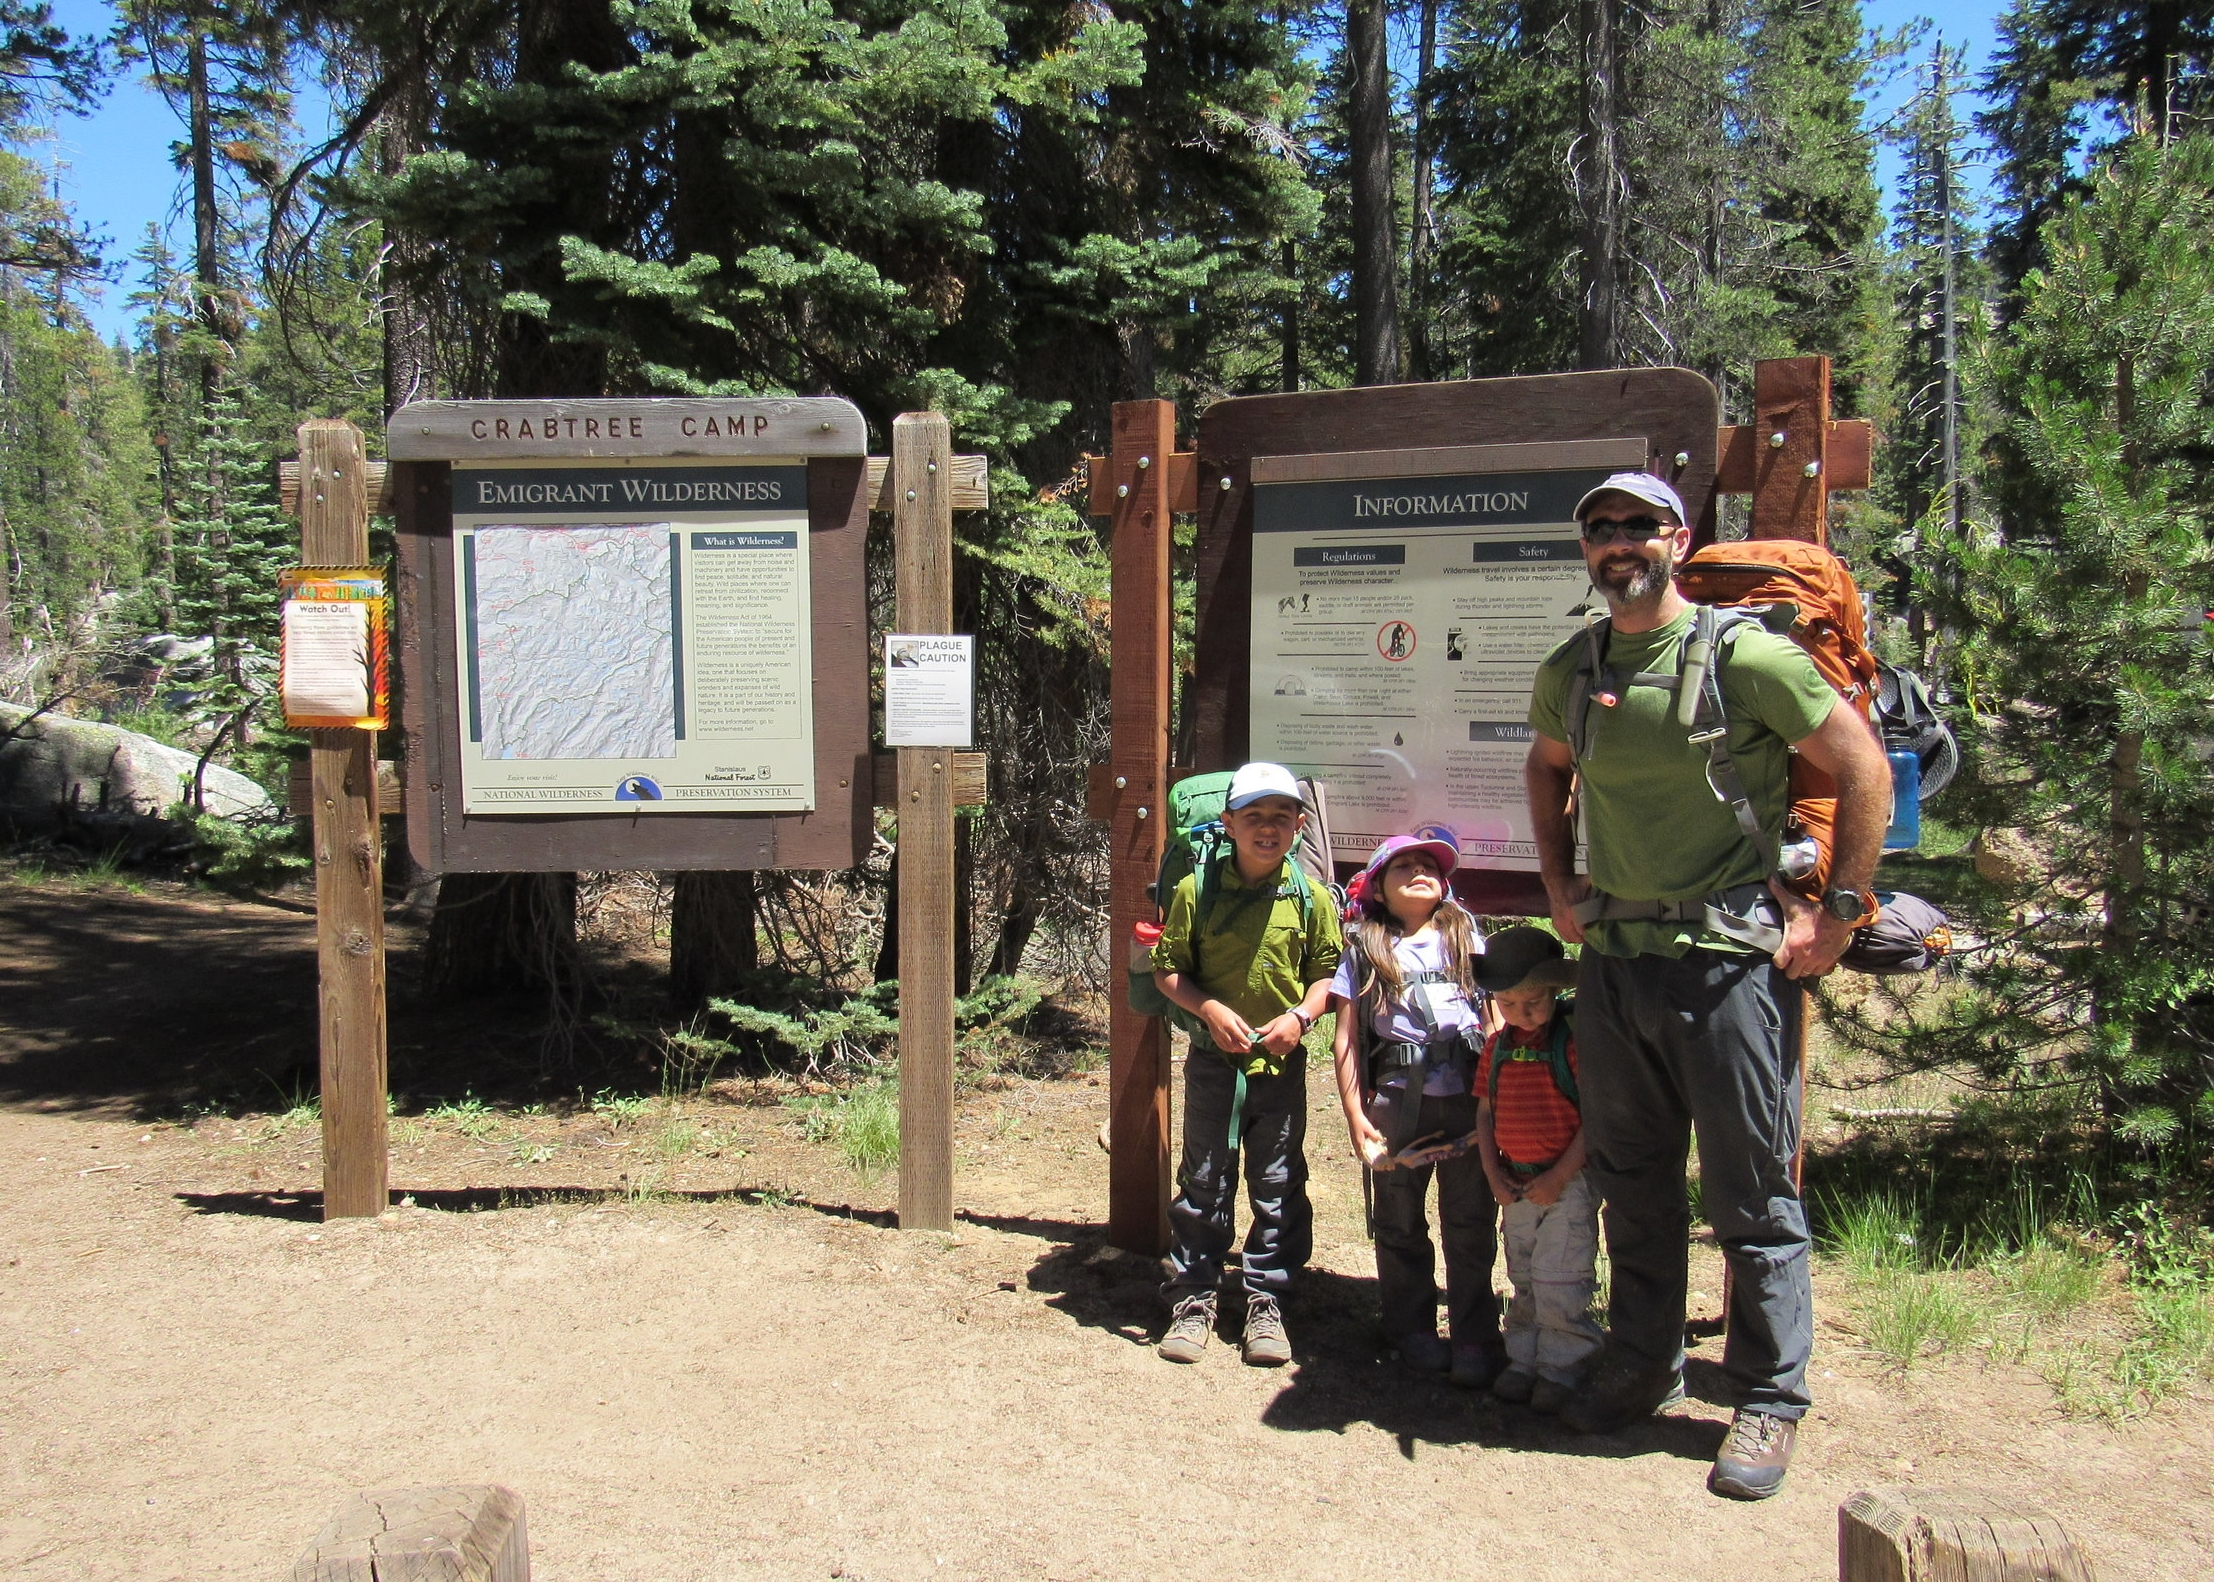 Crabtree Camp Trailhead